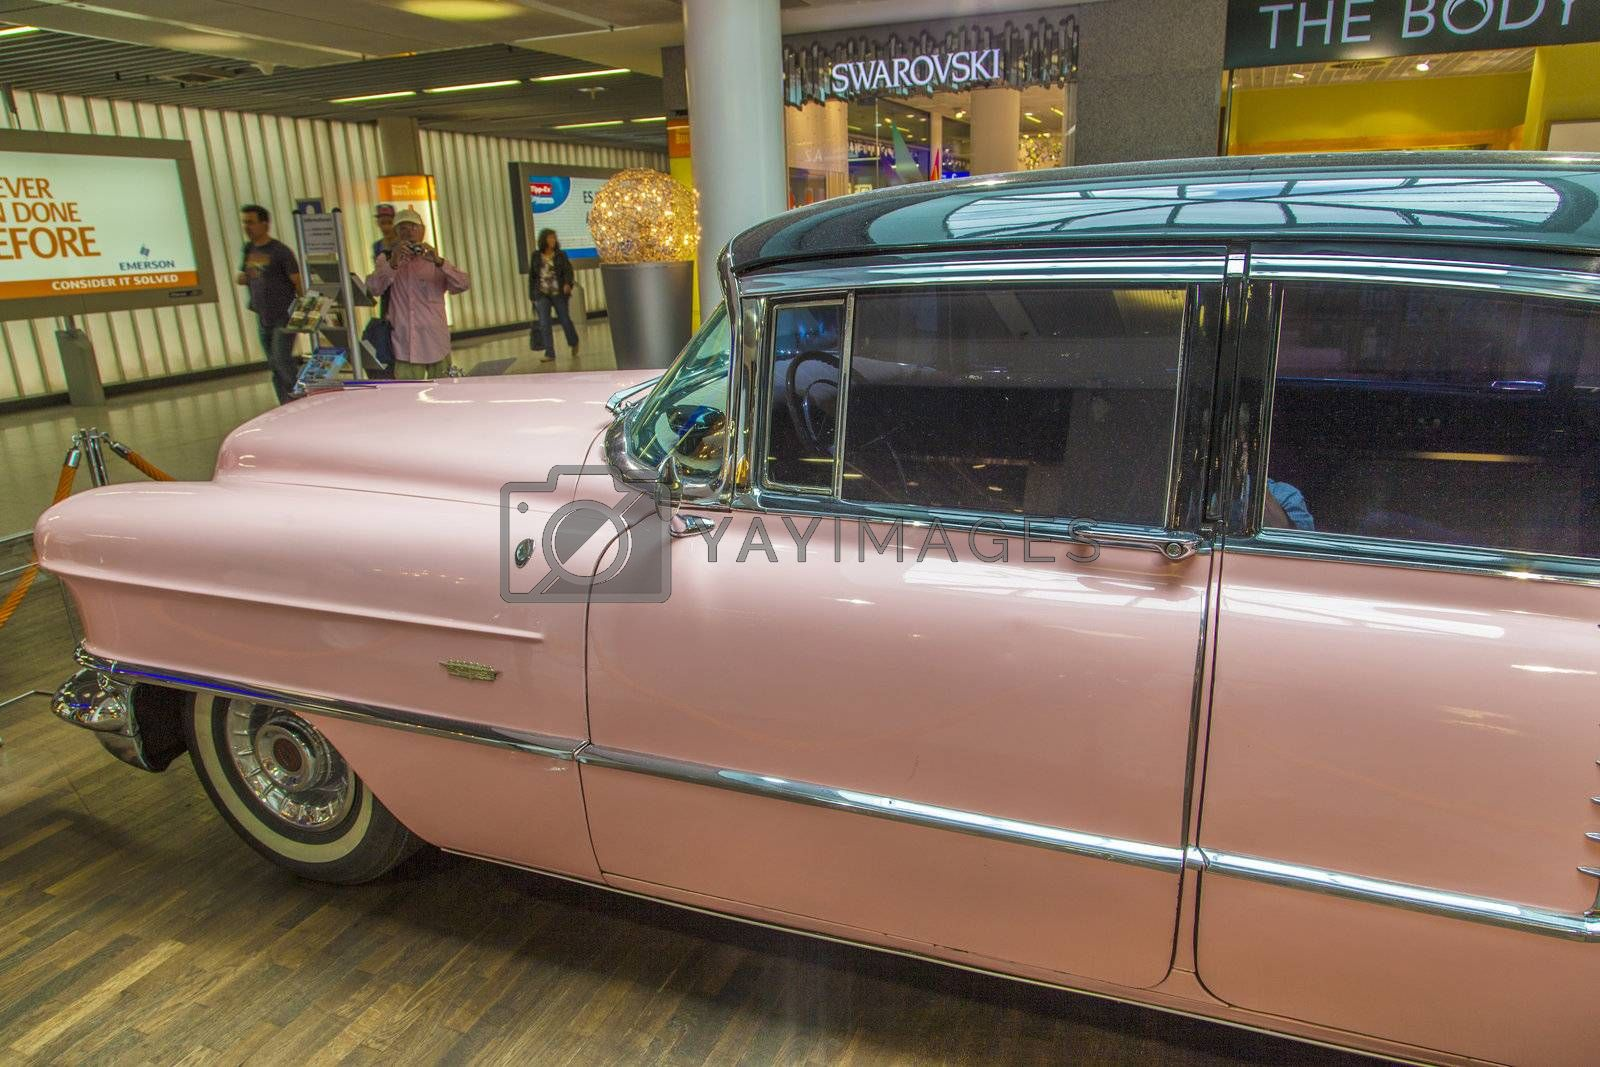 FRANKFURT, GERMANY - JUNE 8:  pink 1956 Cadillac at the airport on June 8, 2012 in Frankfurt, Germany. It belongs to the museum of Sinsheim with more than 1 Millon visitors per year.